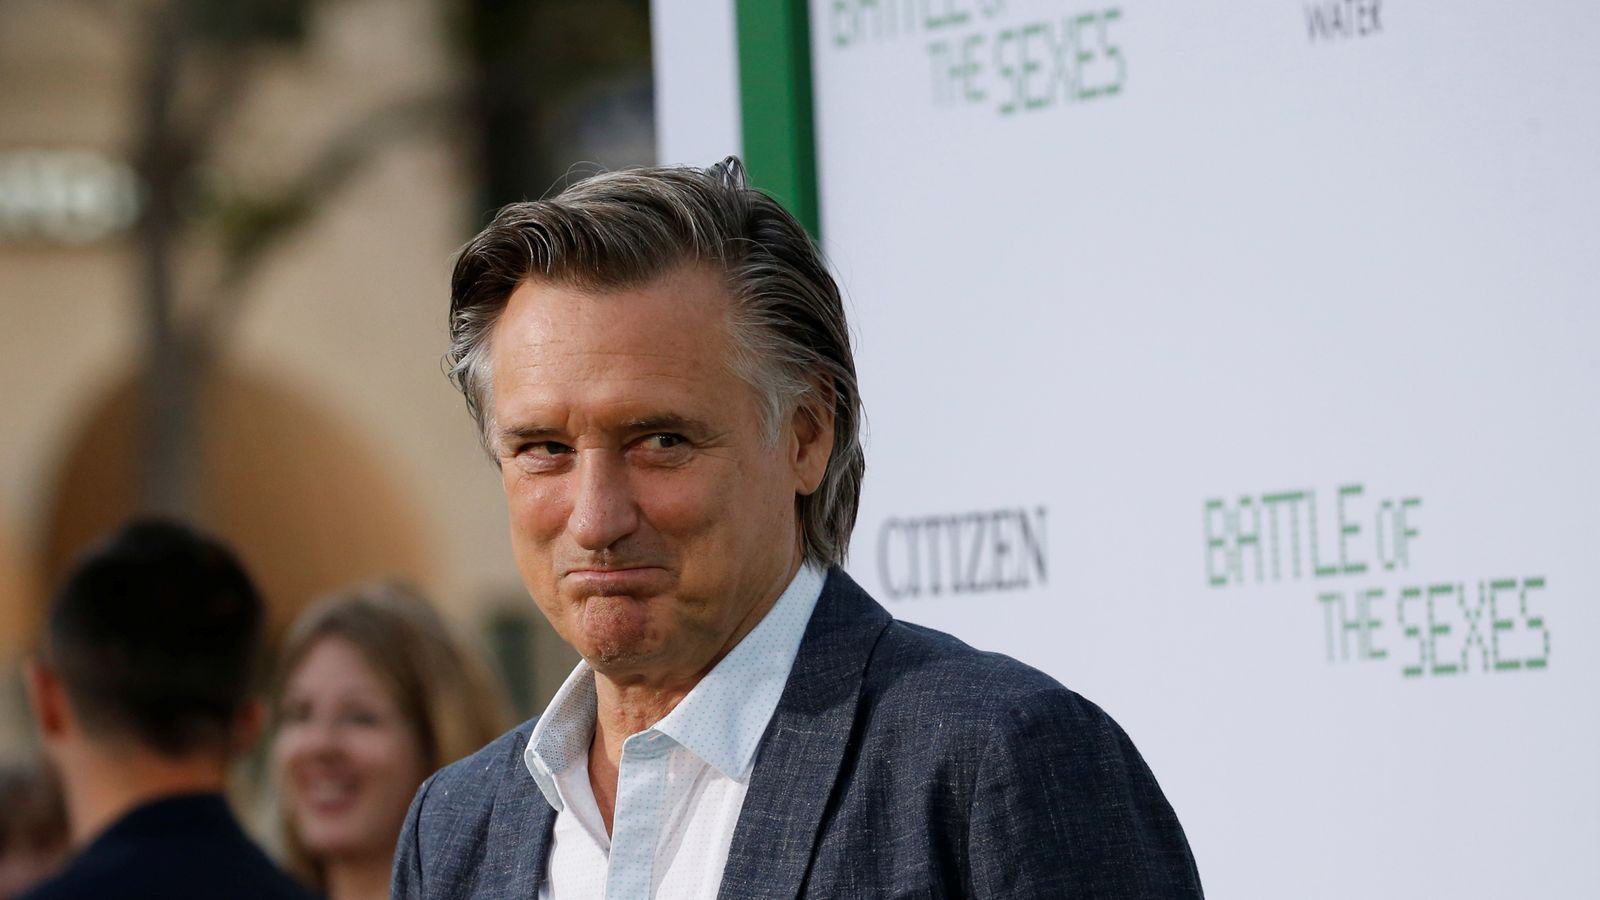 Actor Bill Pullman receives award and breaks it